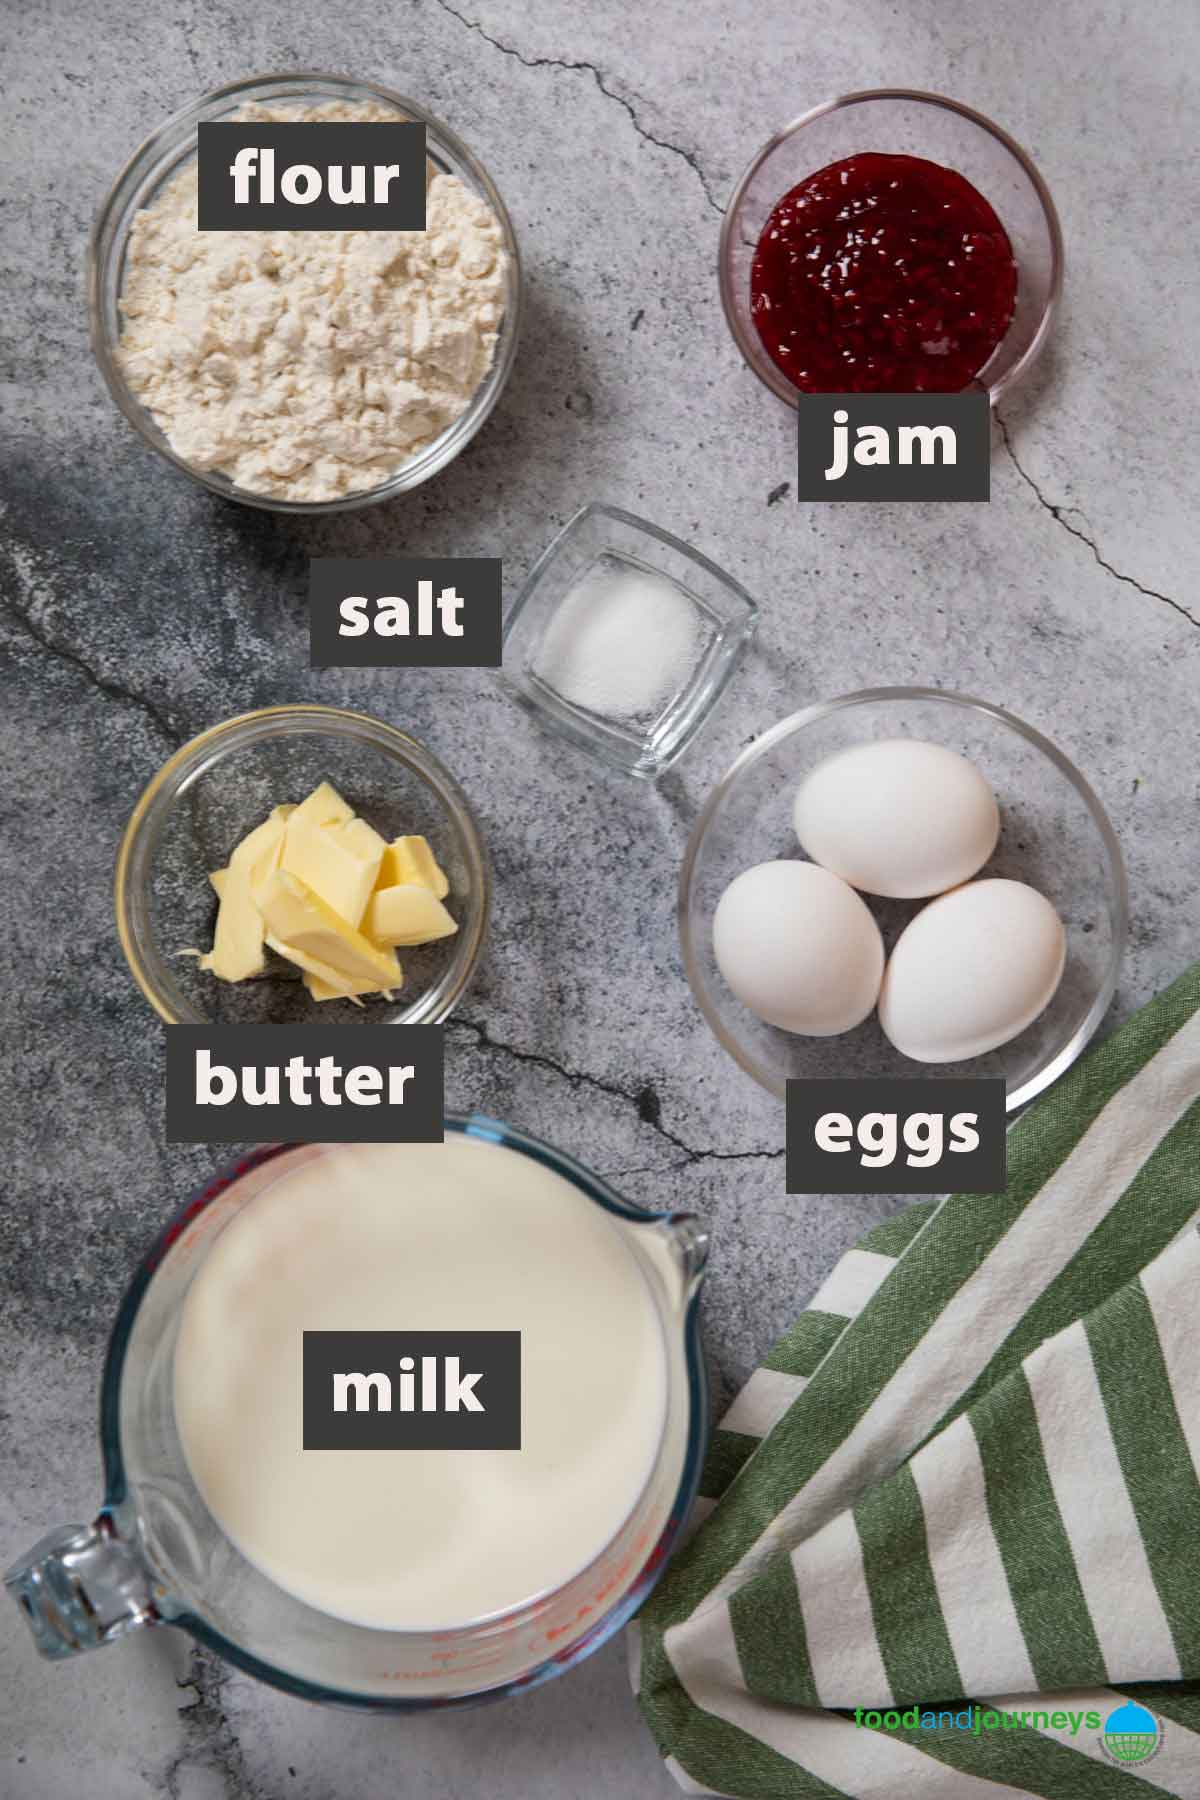 Alll the ingredients you need to prepare Swedish pancakes at home.